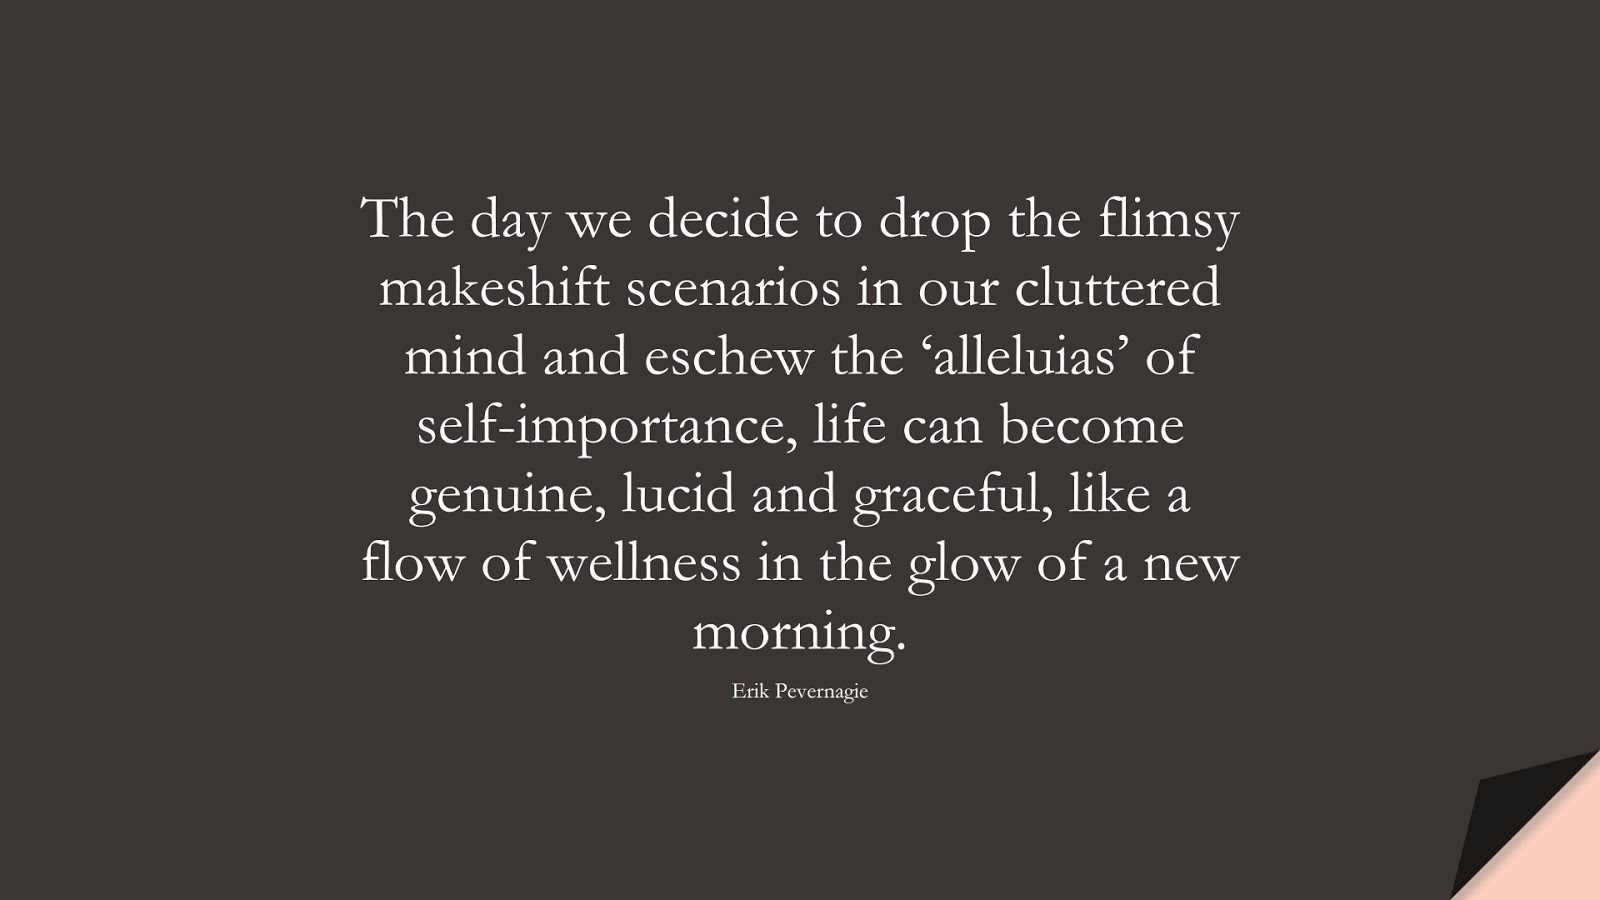 The day we decide to drop the flimsy makeshift scenarios in our cluttered mind and eschew the 'alleluias' of self-importance, life can become genuine, lucid and graceful, like a flow of wellness in the glow of a new morning. (Erik Pevernagie);  #HealthQuotes